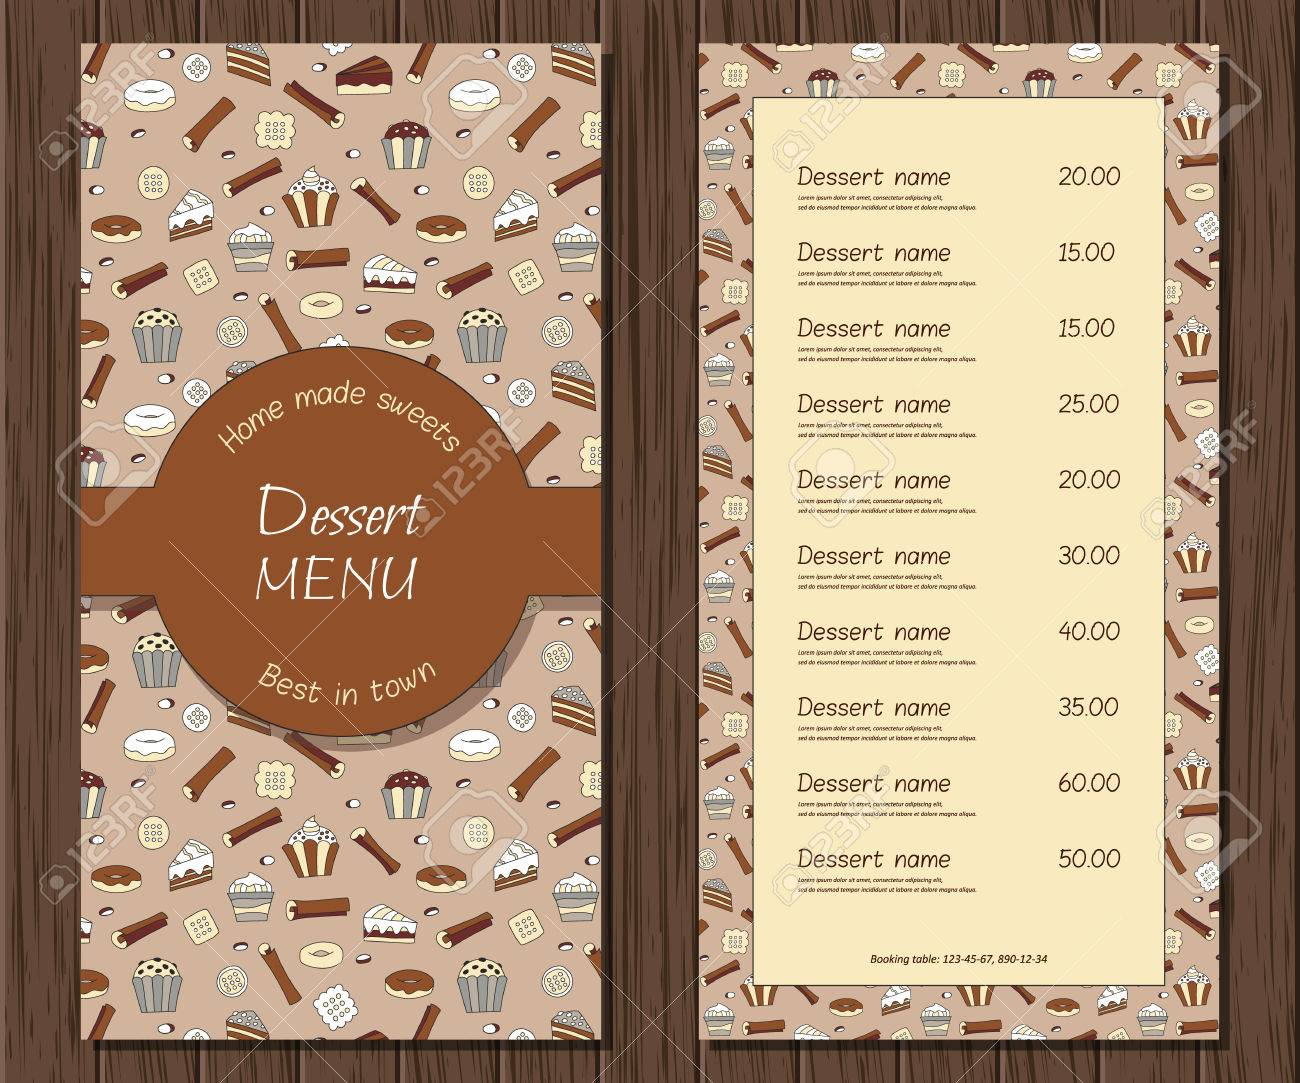 Vector dessert menu template restaurant or cafe retro background vector vector dessert menu template restaurant or cafe retro background chocolate cake brochure home made sweets bakery business illustration flashek Choice Image